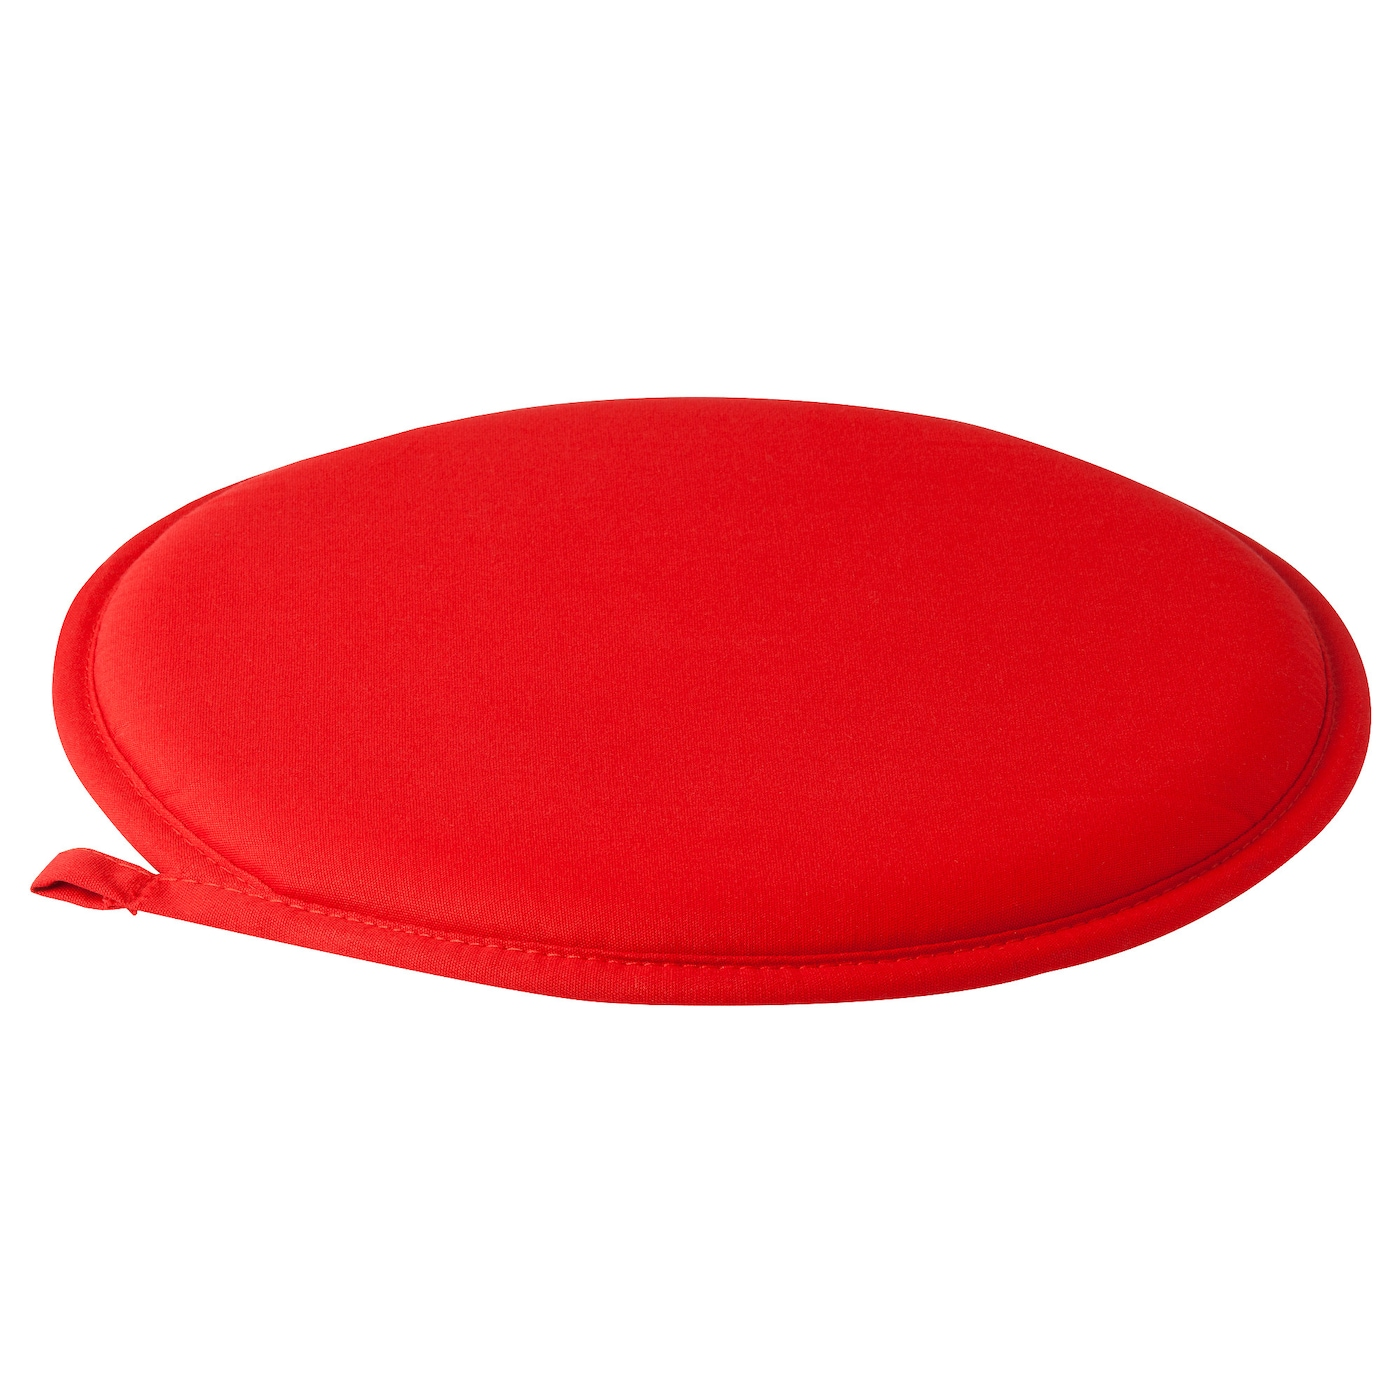 CILLA Chair pad Red 34 cm IKEA